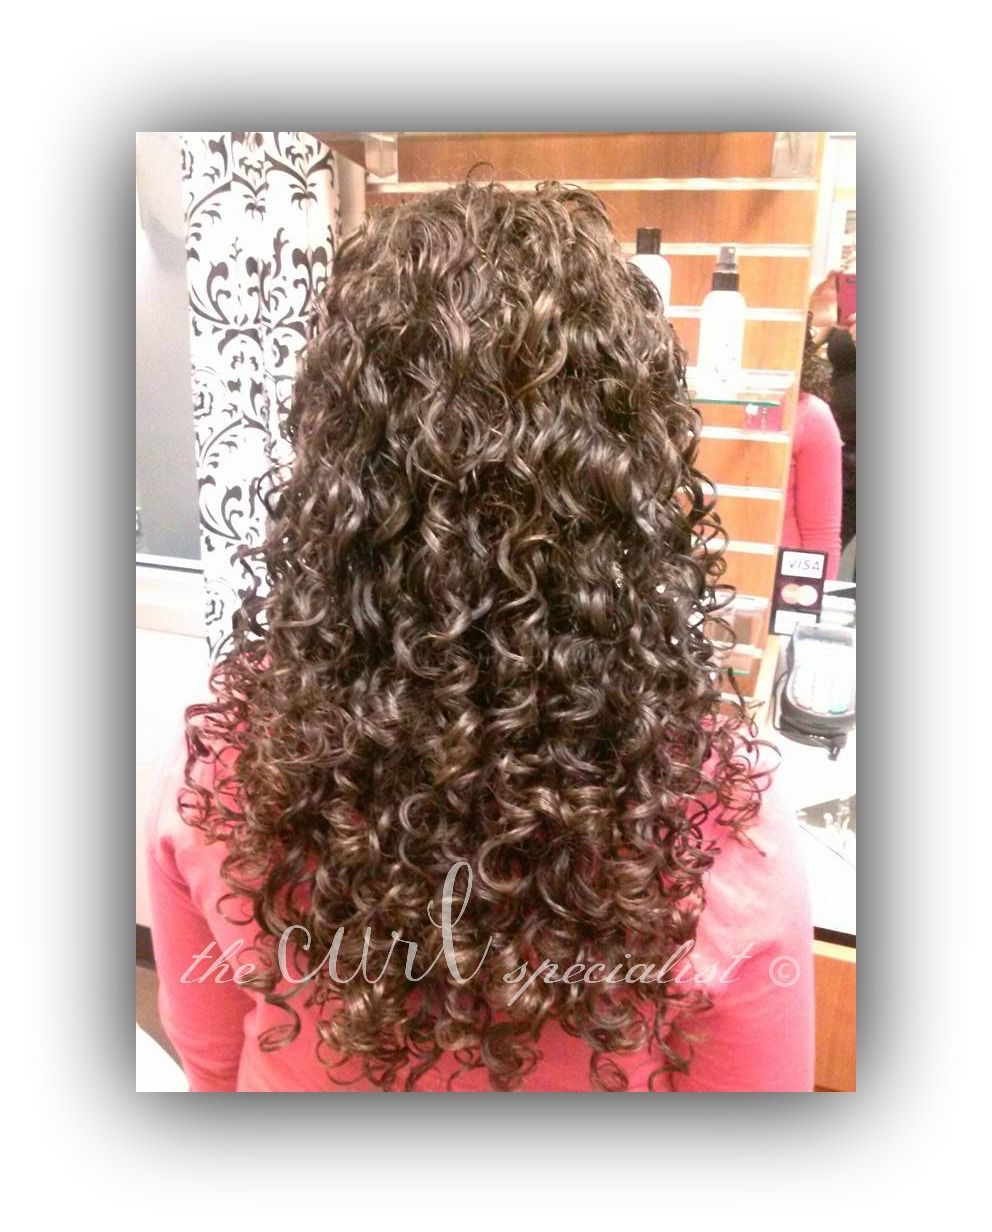 Curly Kids!  Curly Cut and Style by The Curl Specialist.  https://www.facebook.com/TheCurlSpecialist?ref=hl